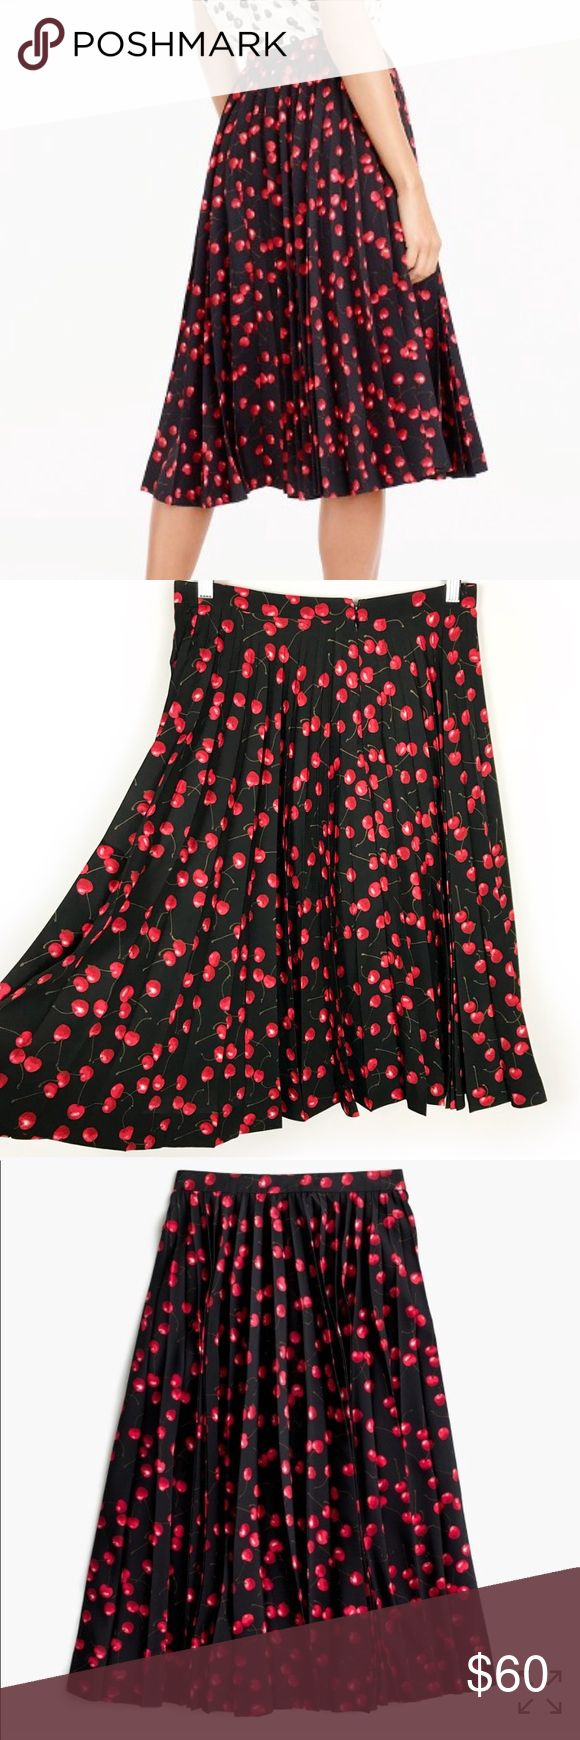 """J Crew 4 Pleated midi skirt in cherry print The secret to this flattering skirt? Its sunburst-style pleats, which lie flat at the waist for a clean, streamlined effect. We crafted this version in a playful cherry print that we developed in-house and sprinkled throughout our women's collection. A couple things we like about it: the sophisticated colors and the fact that, from far away, it kinda looks like a fun polka dot.  Poly. Back zip. Lined.  Size 4 measures approx 14.5"""" waist 24.5"""" long…"""